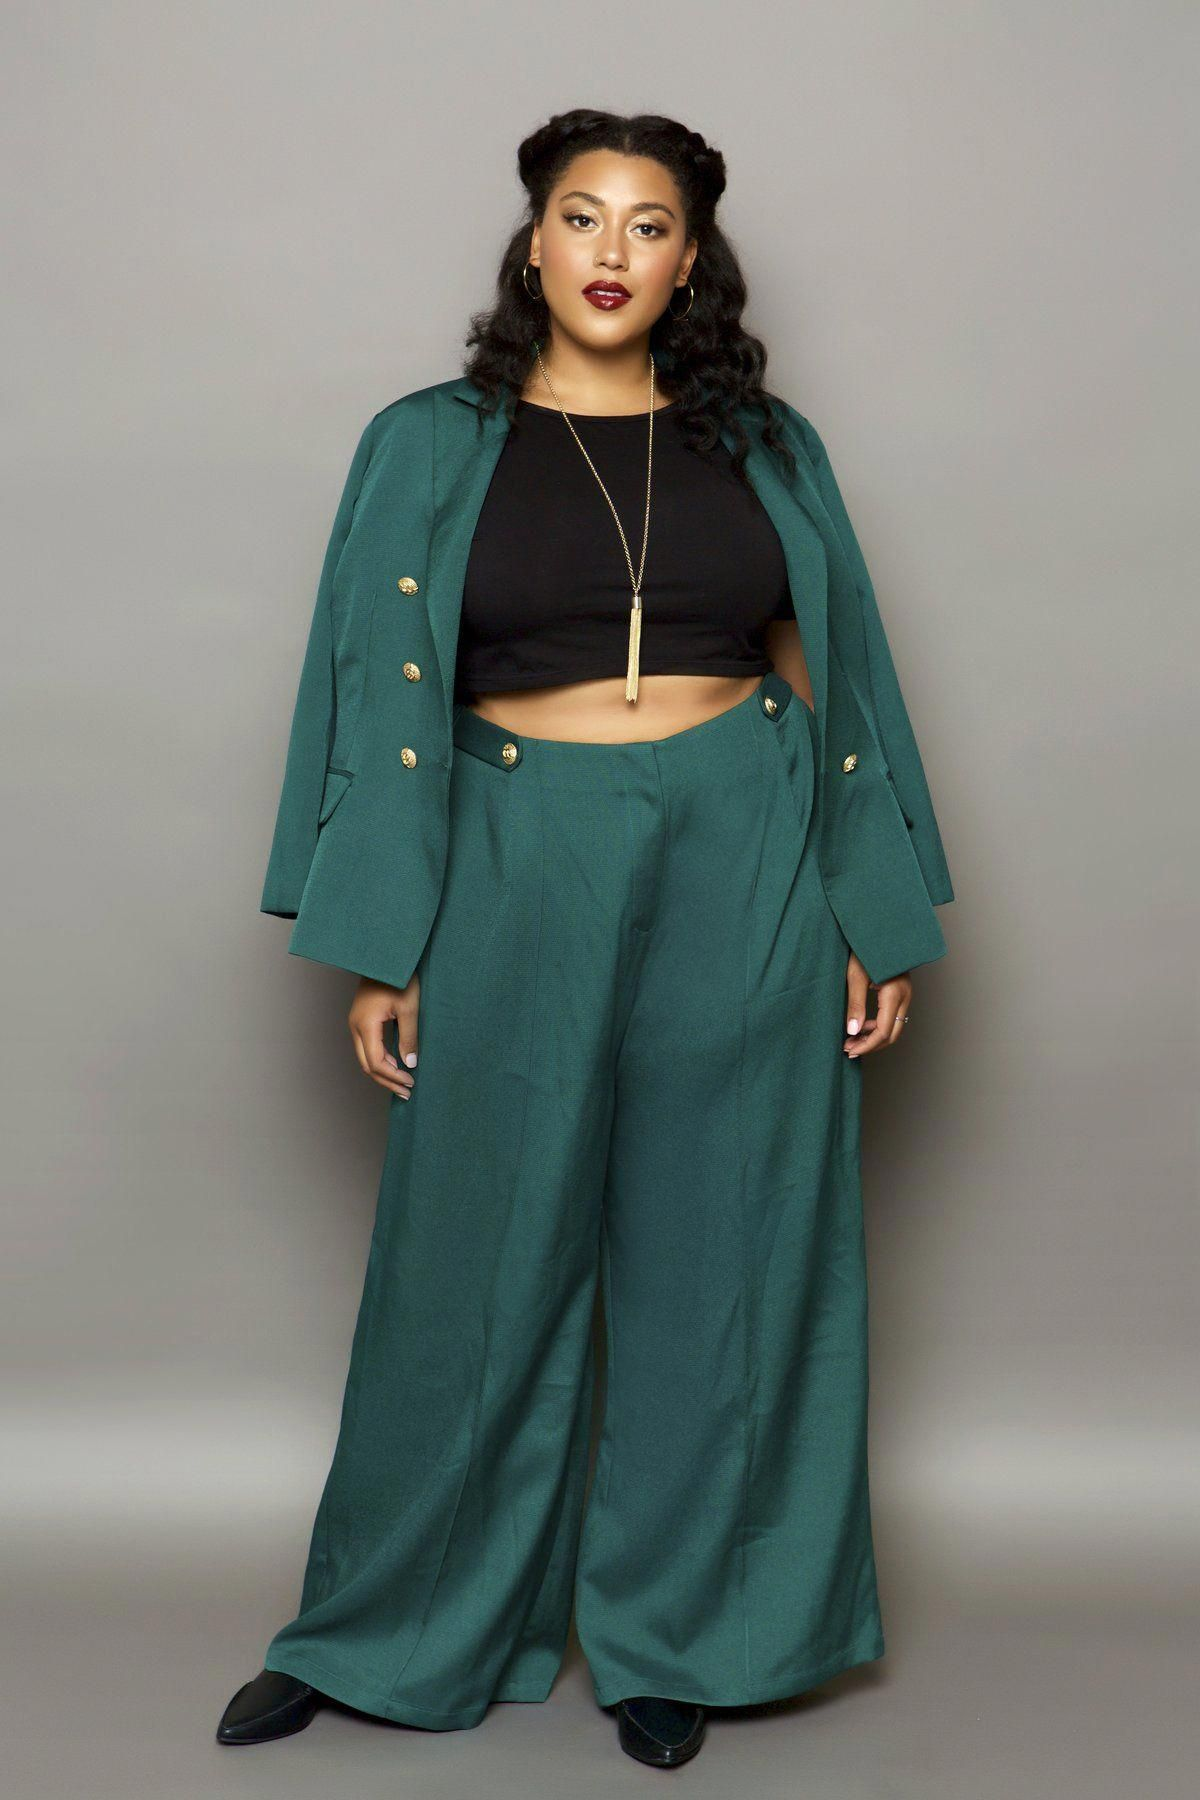 2b96952f2a8 Cheap Going Out Dresses Plus Size - Gomes Weine AG